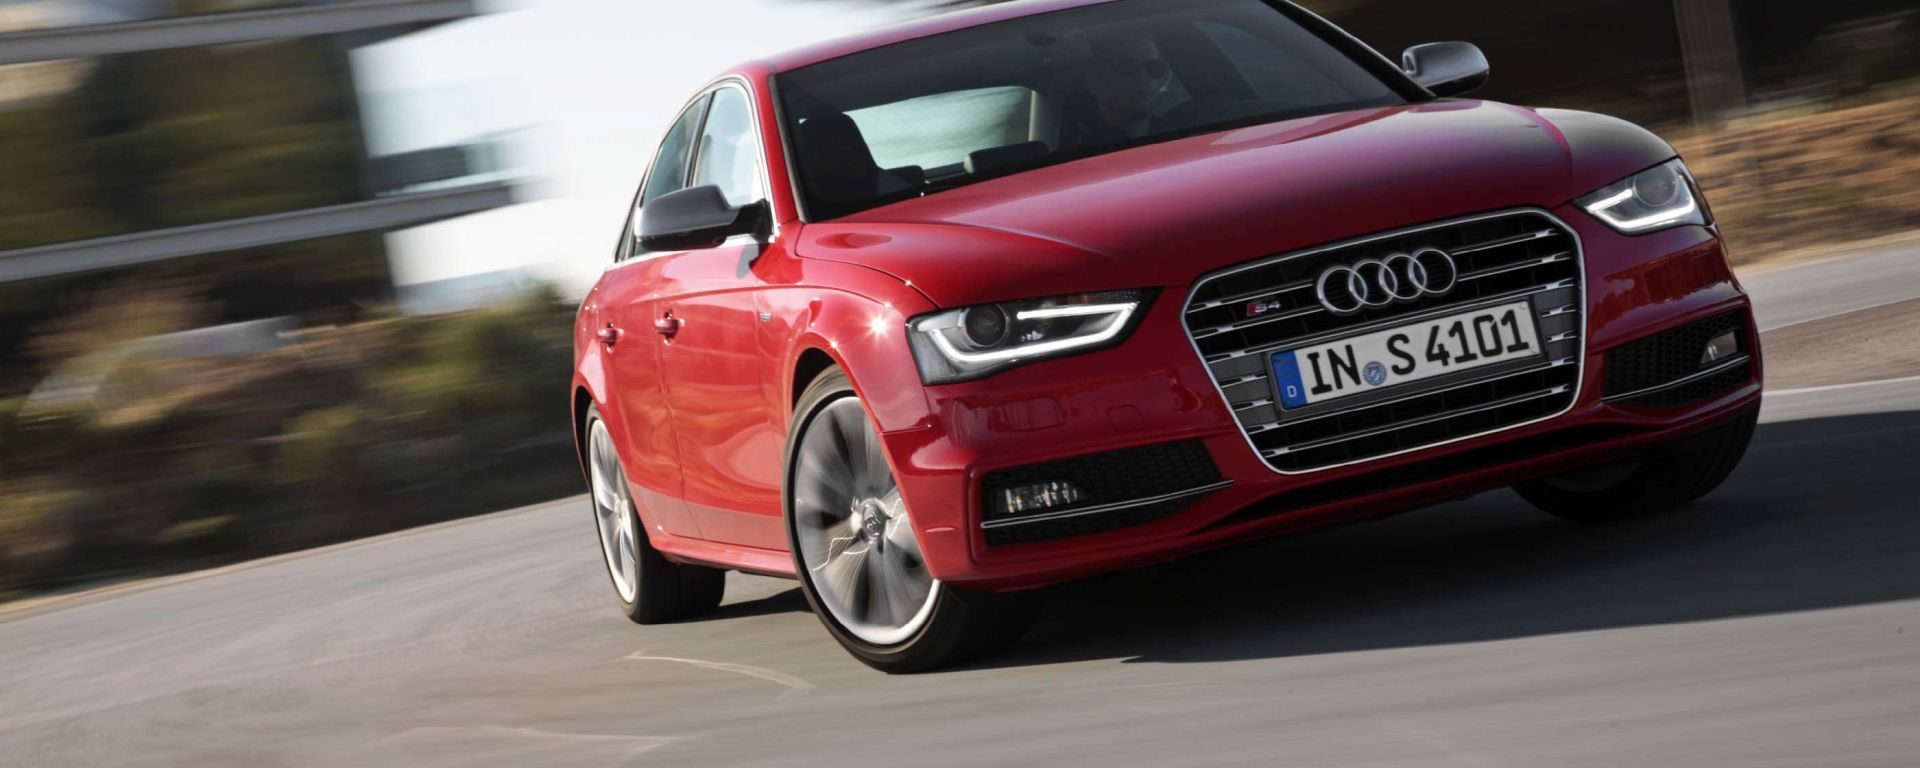 Audi A4 e S4 2012: ora anche in video